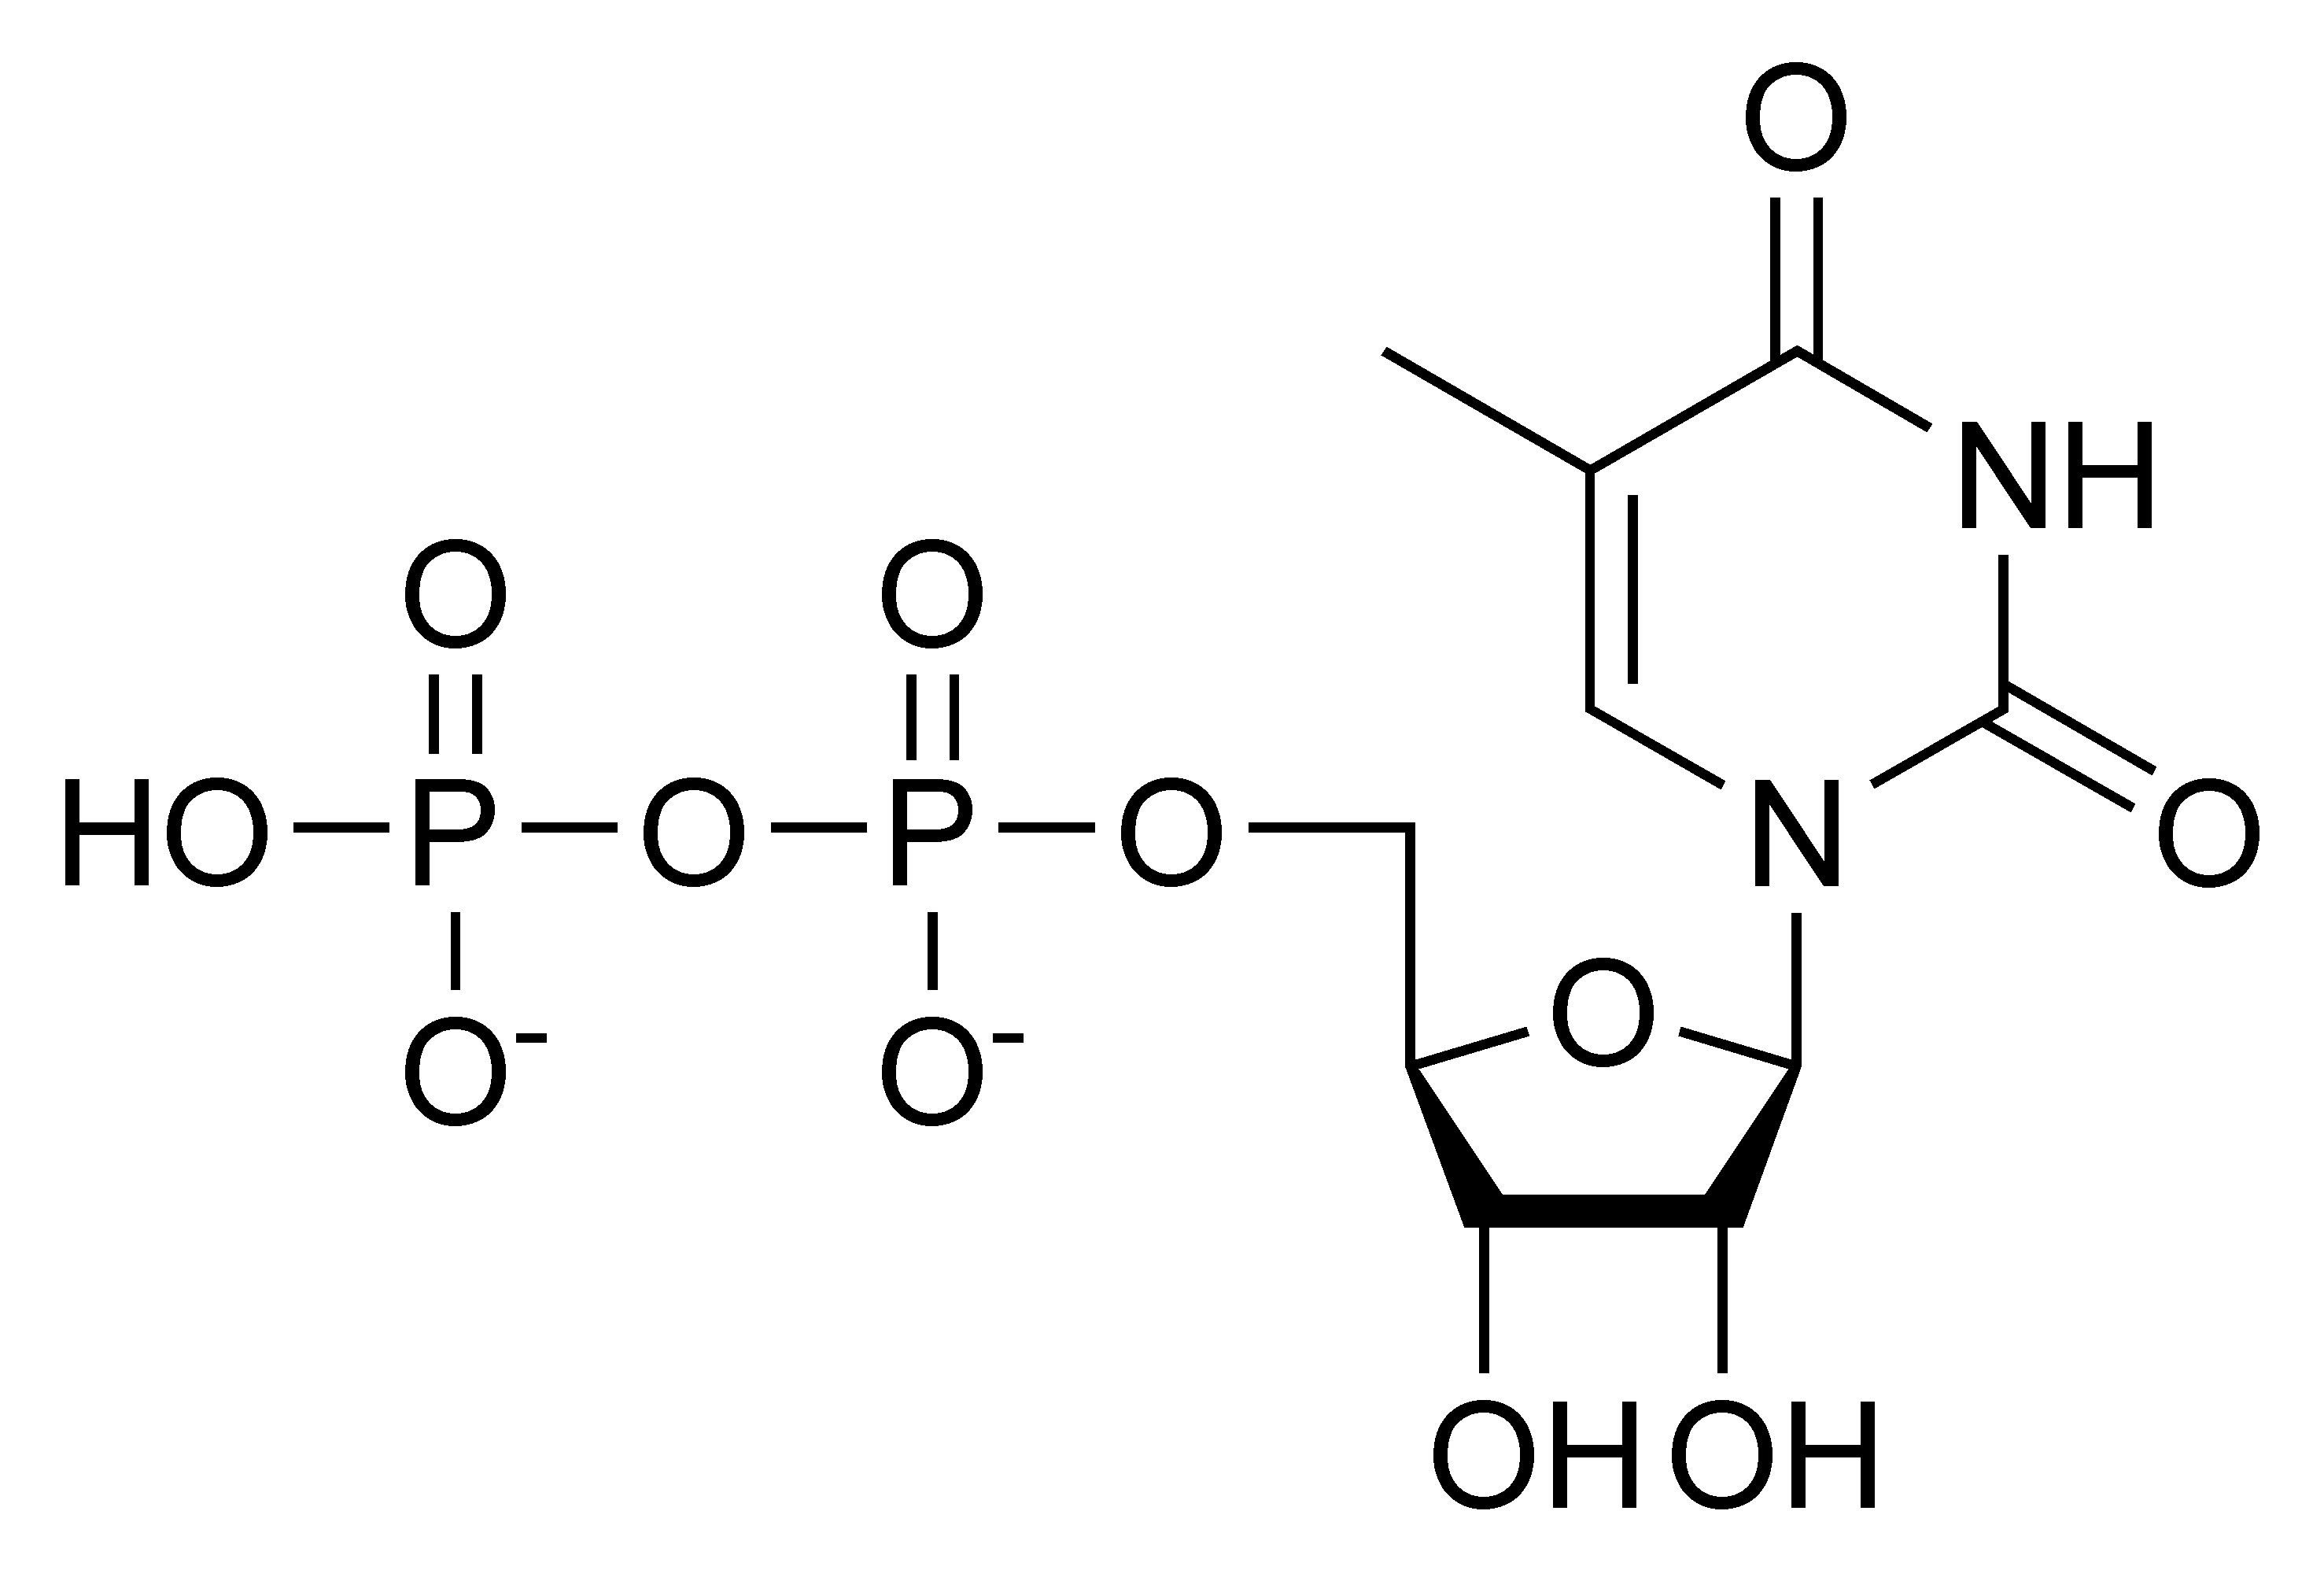 Chemical structure of thymidine diphosphate